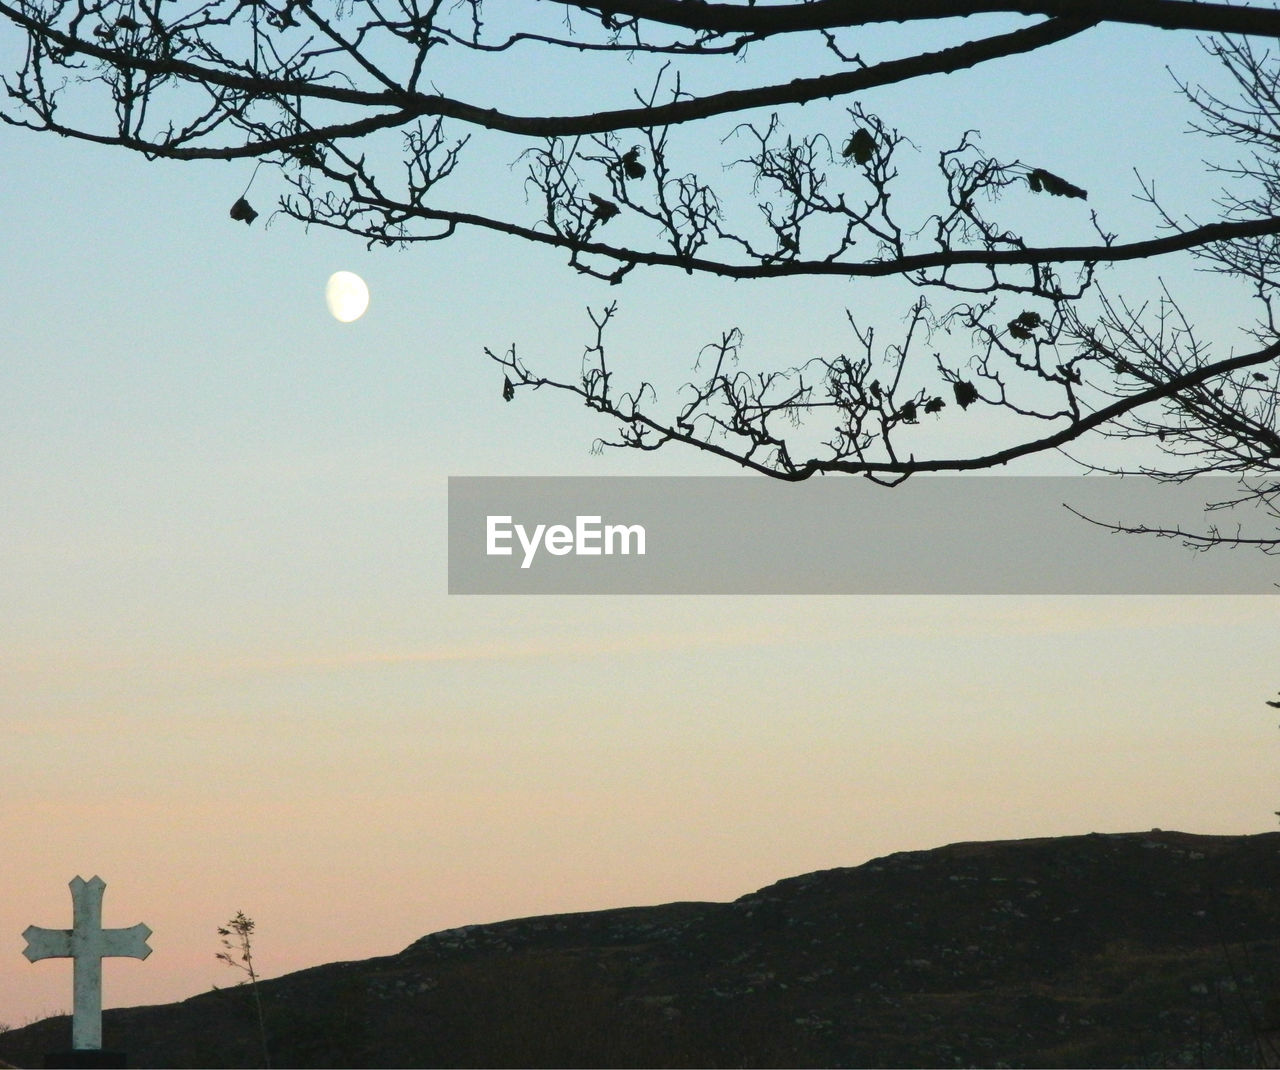 moon, nature, sky, beauty in nature, tree, tranquility, no people, outdoors, scenics, silhouette, bare tree, sunset, clear sky, branch, day, astronomy